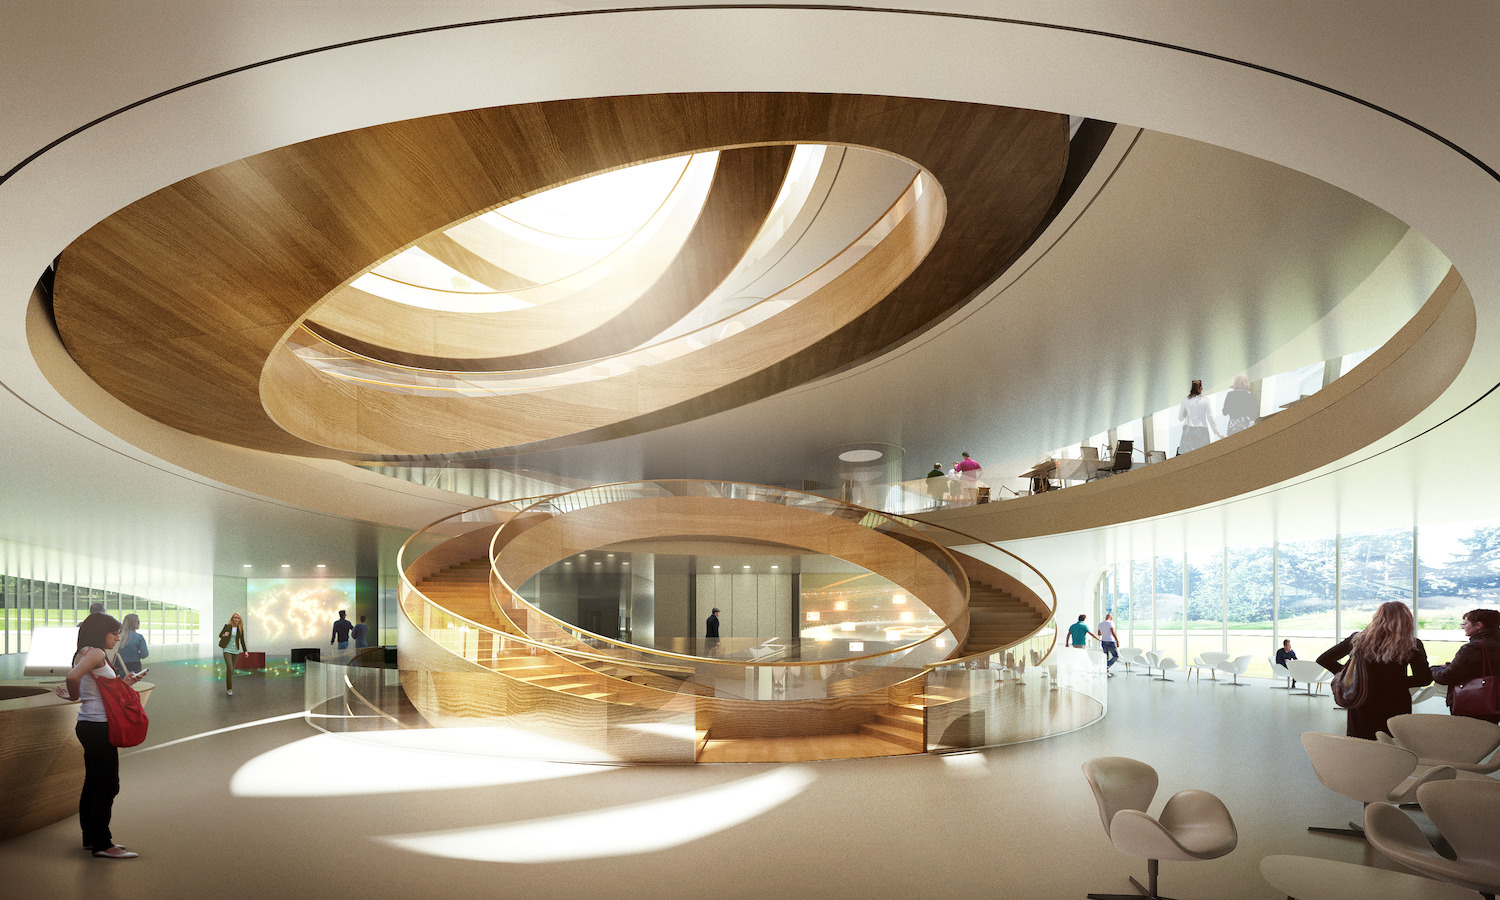 Headquarters for the International Olympic Committee. Lausanne, Switzerland. Architectural design and rendering by 3XN. Projected completion 2019.